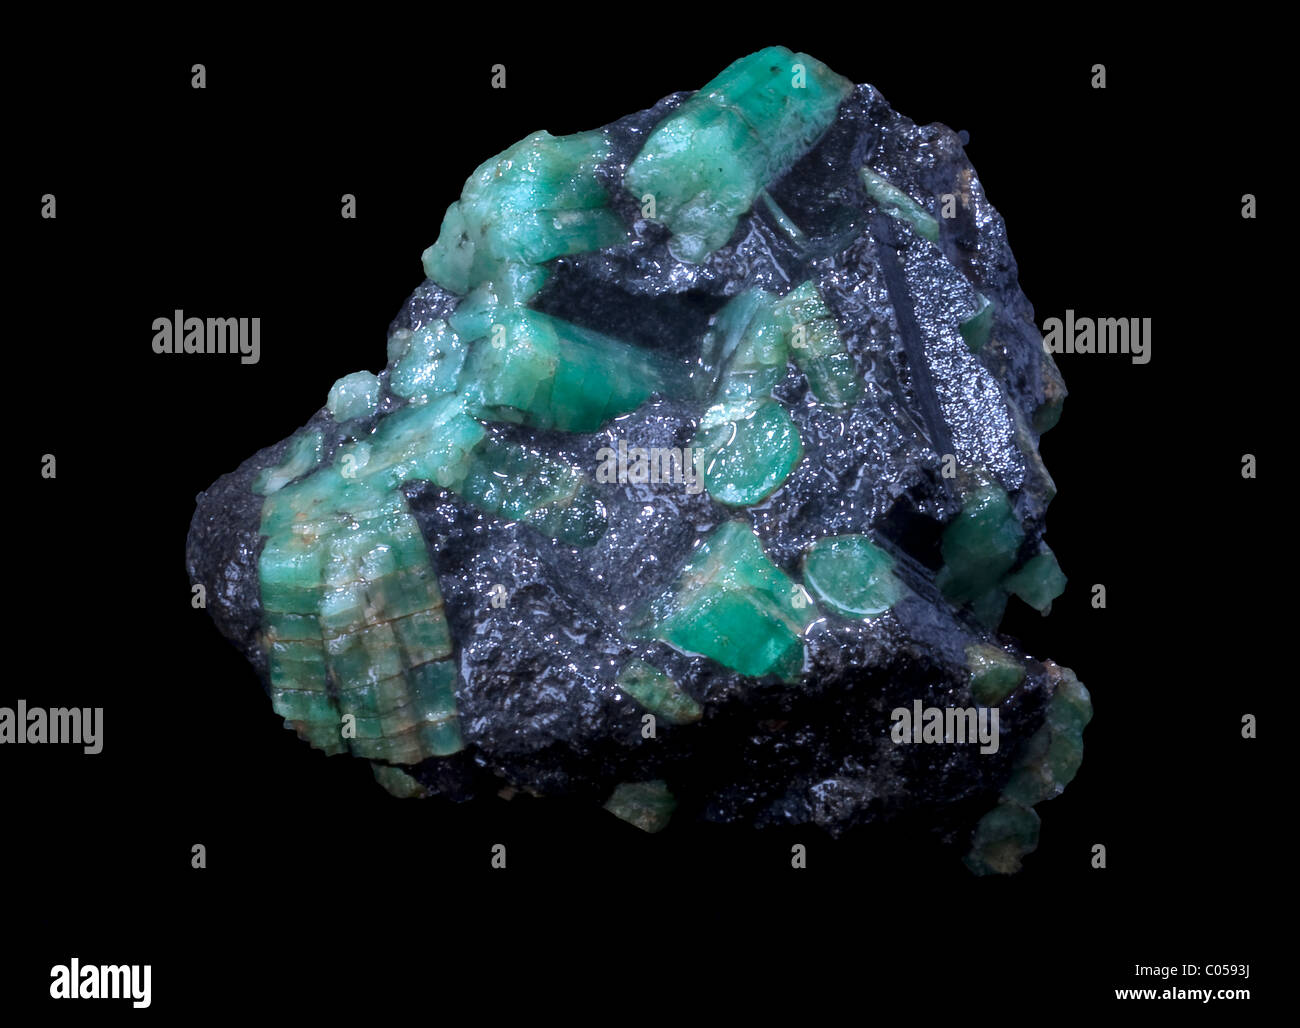 emerald stone in a black isolated background - Stock Image